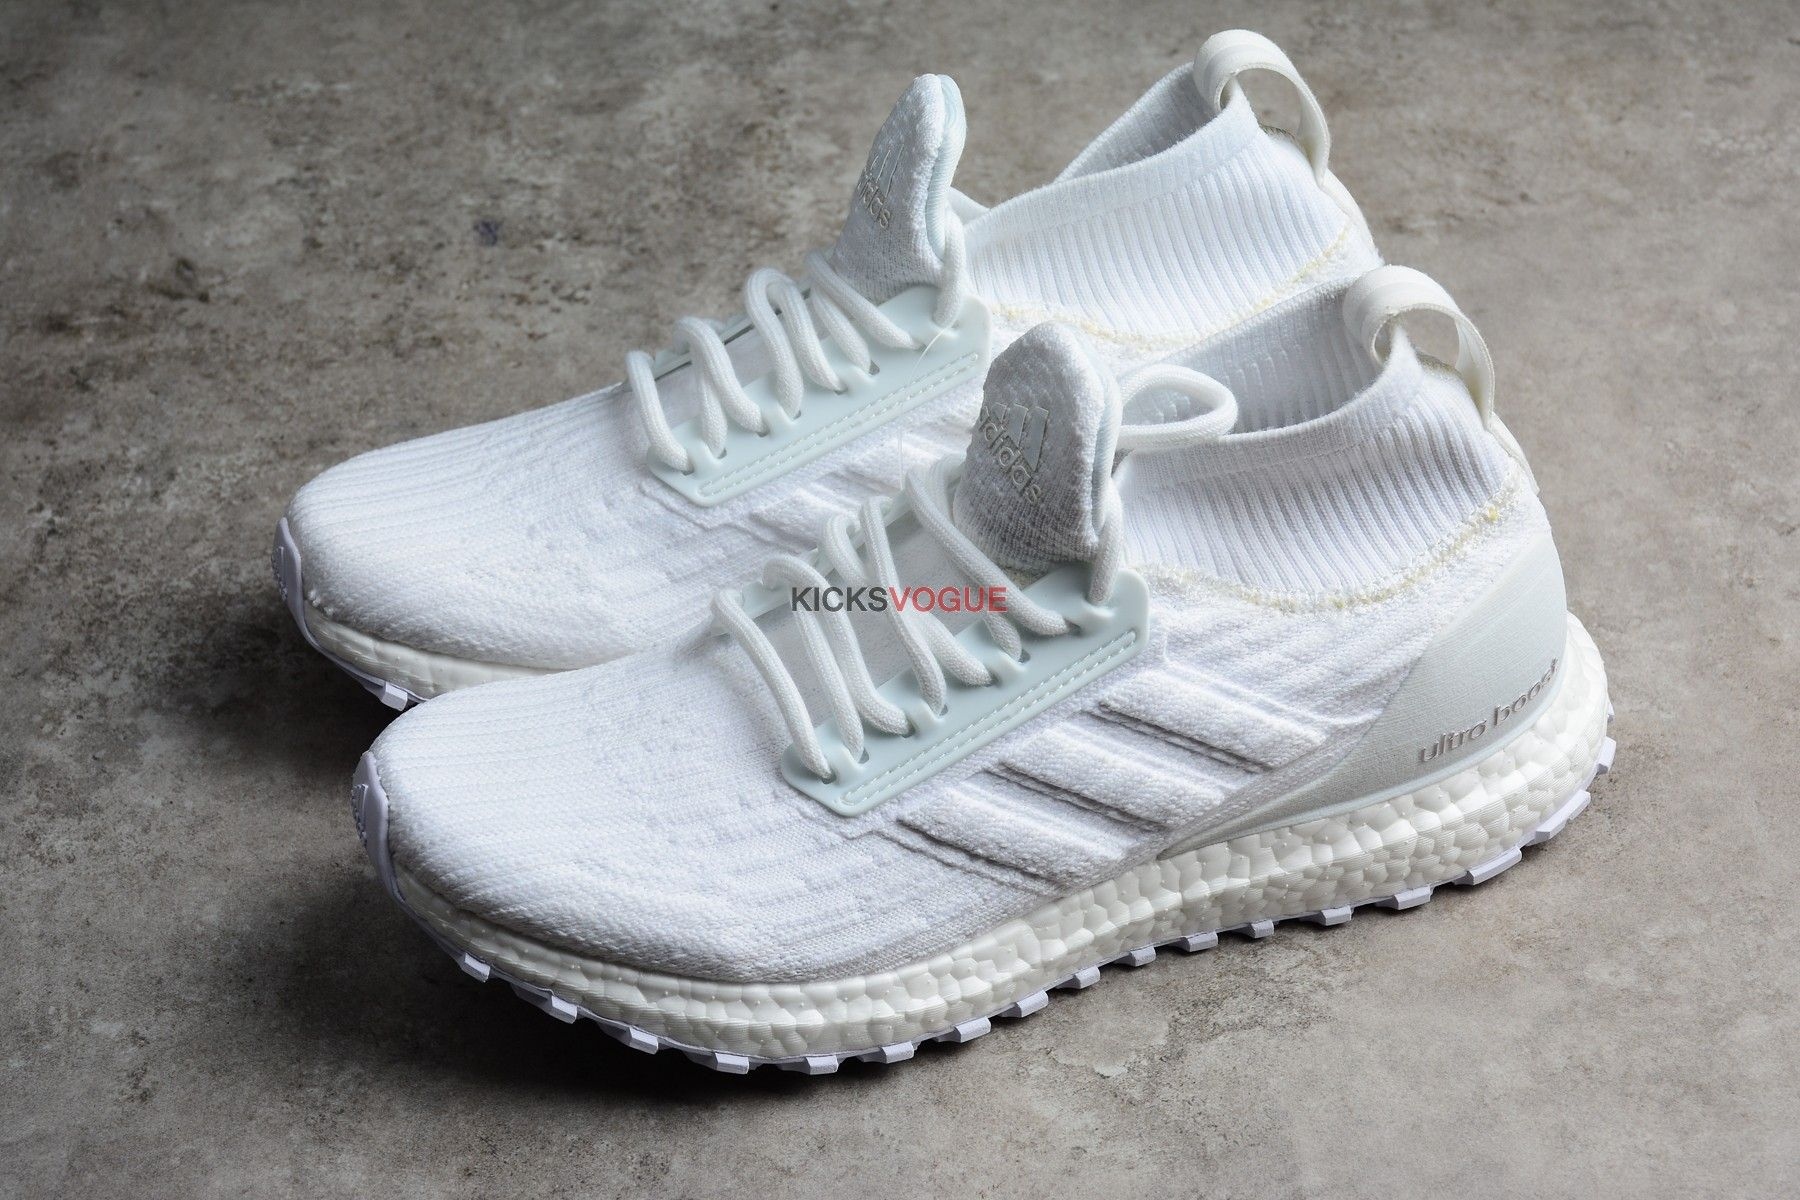 b340cff26 ADIDAS ULTRA BOOST ATR MID PRIMEKNIT TRIPLE WHITE BY8926